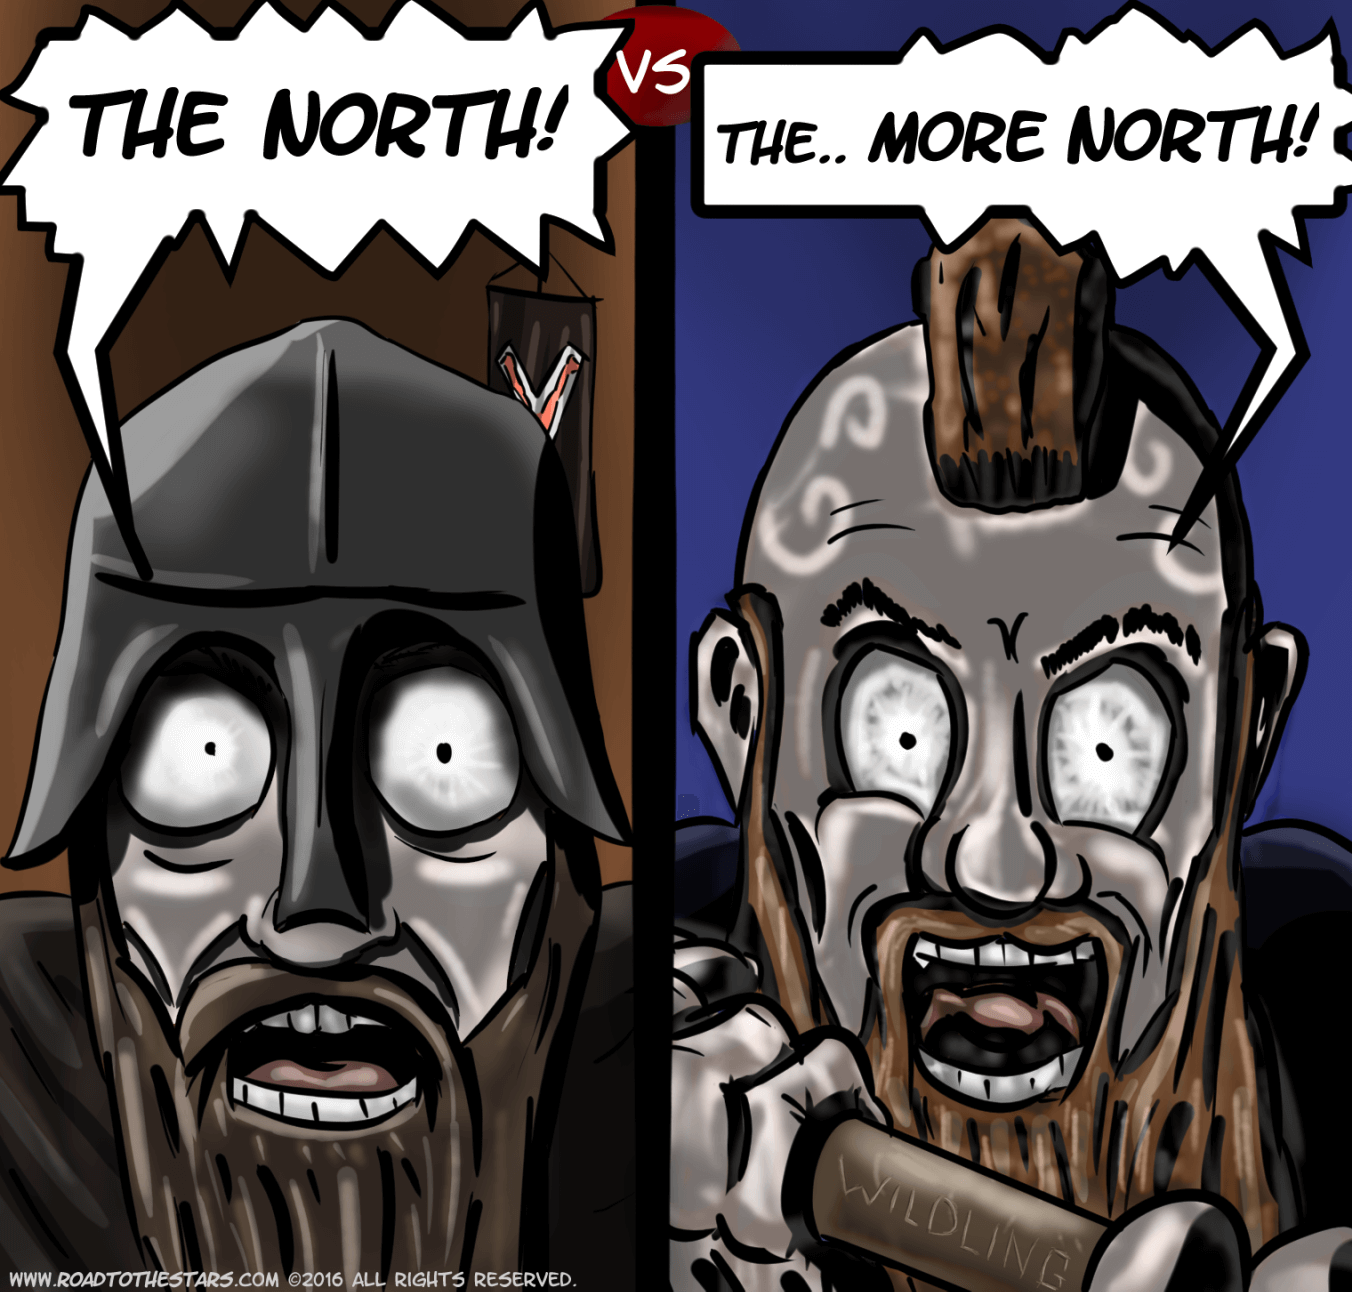 (SPOILER GAME OF THRONES) The North belongs to the North